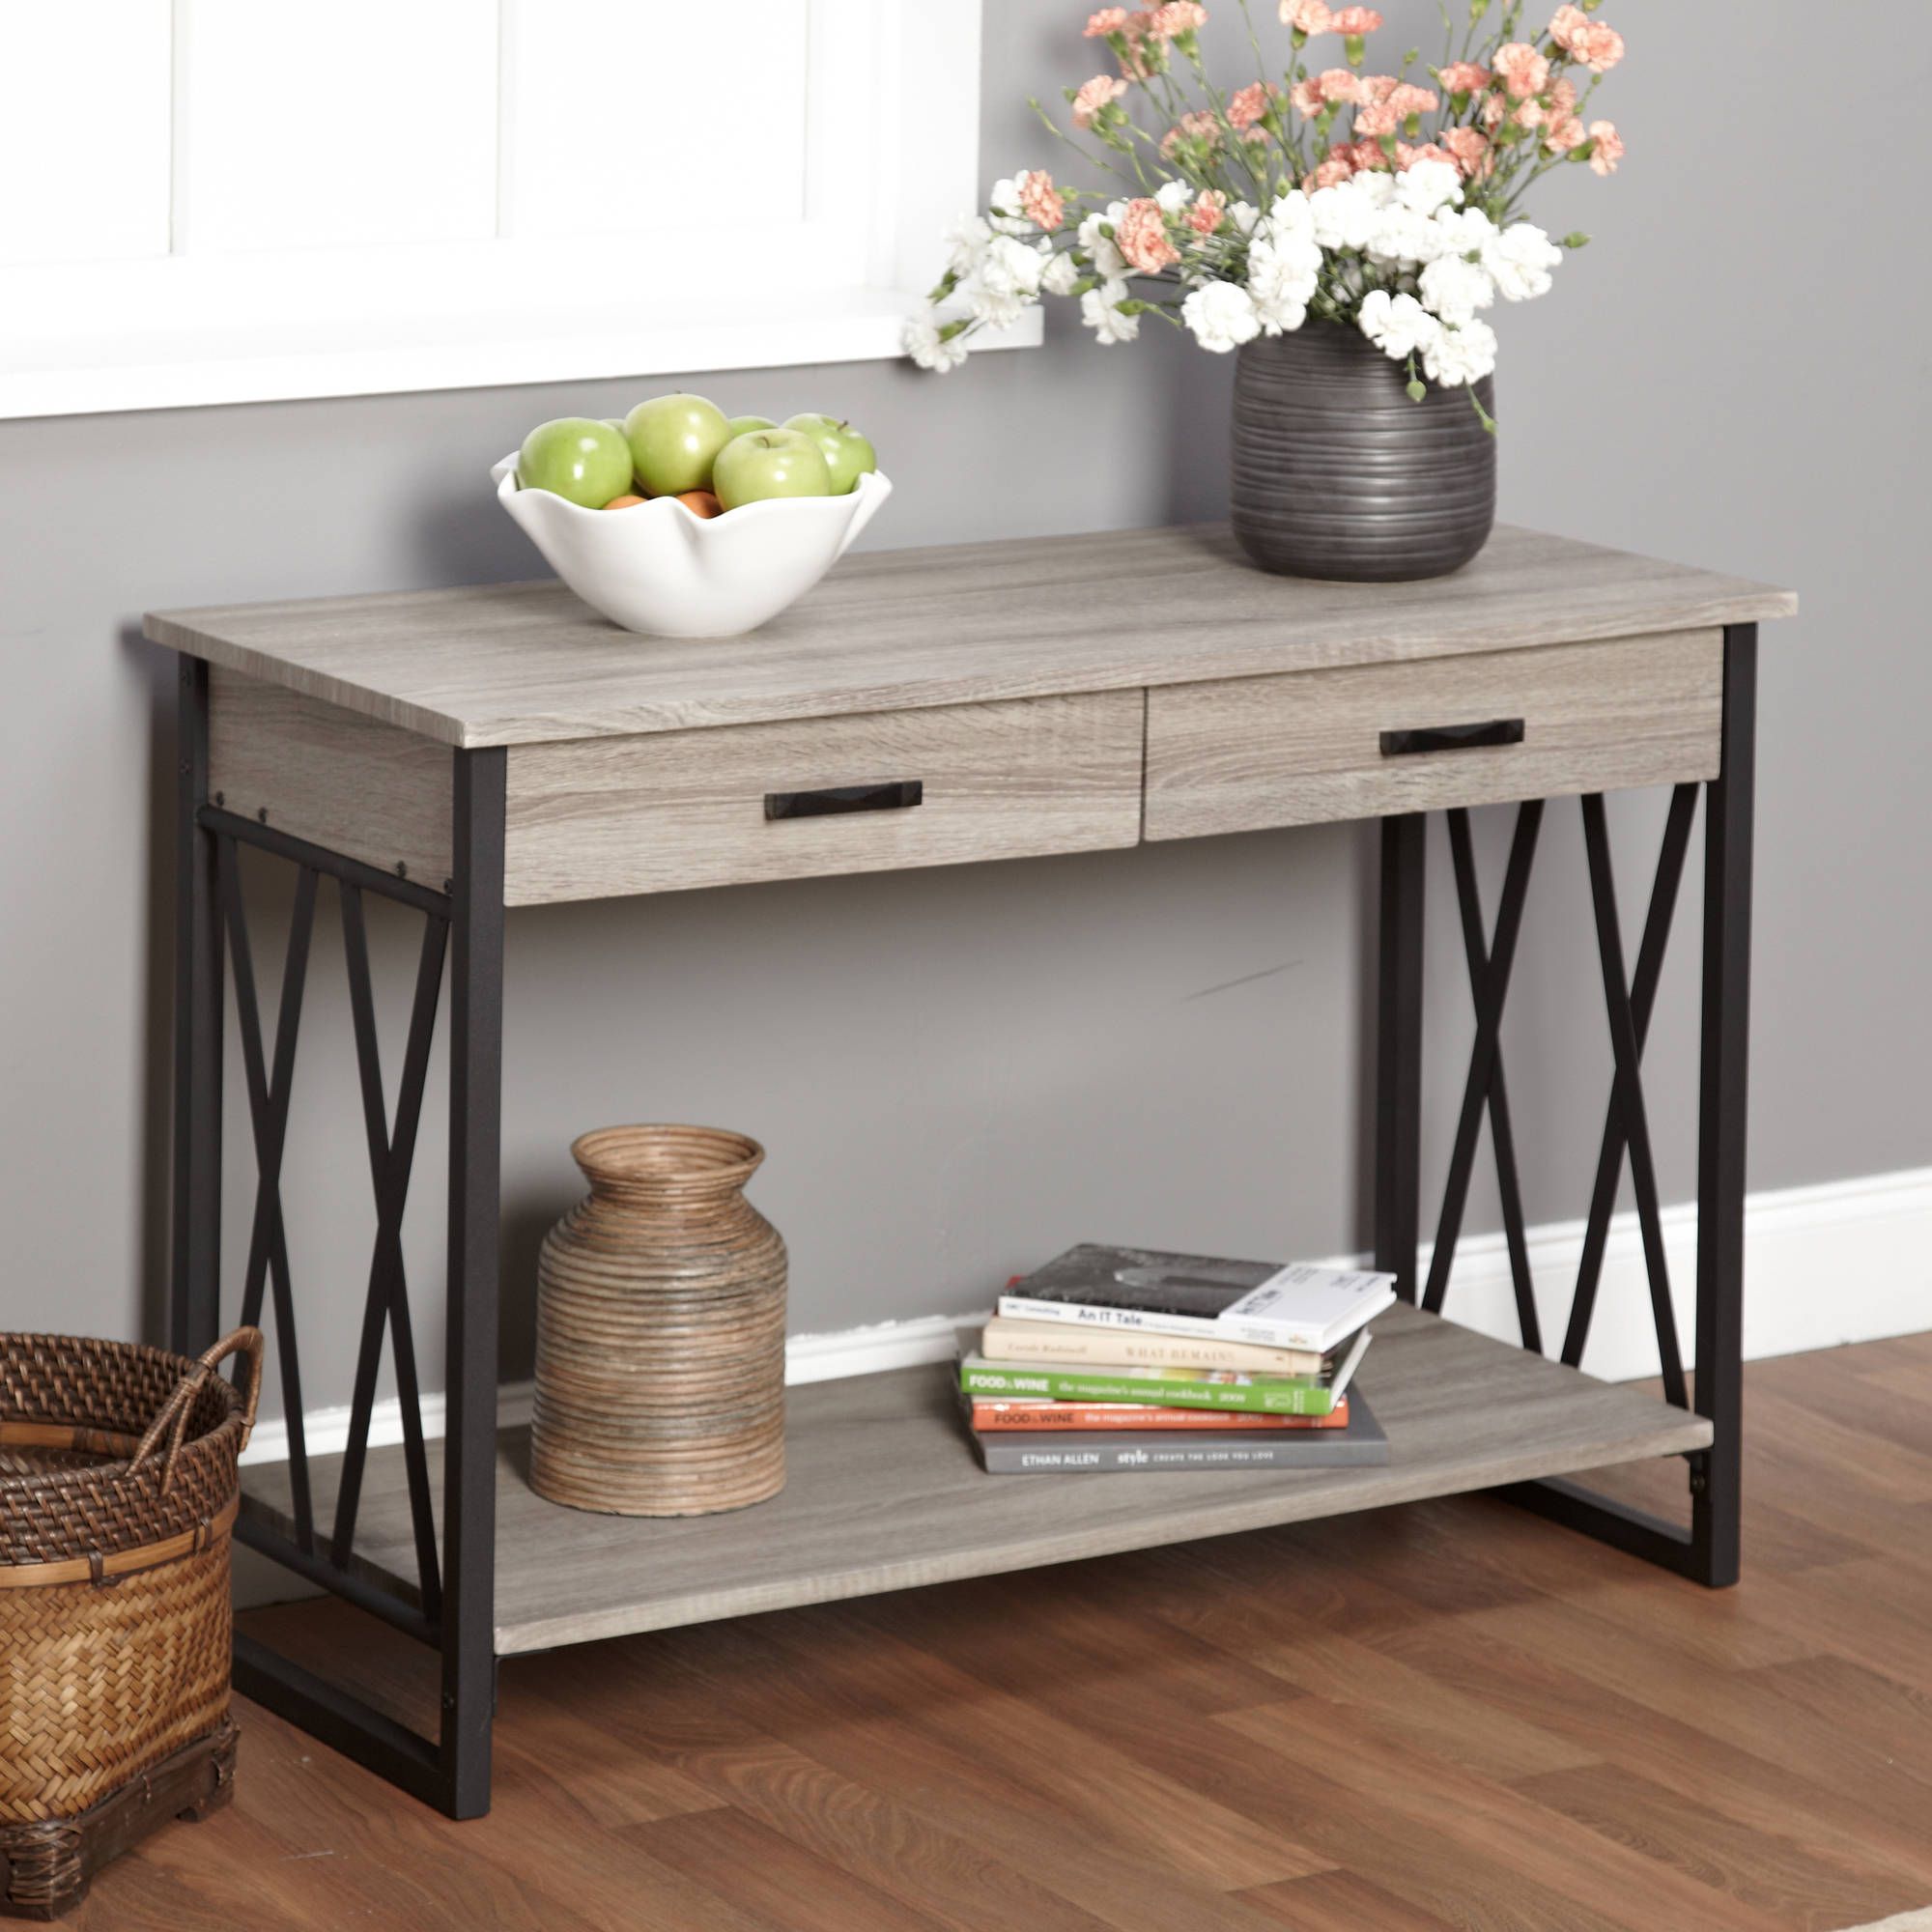 Jaxx Collection Sofa Table, Multiple Colors